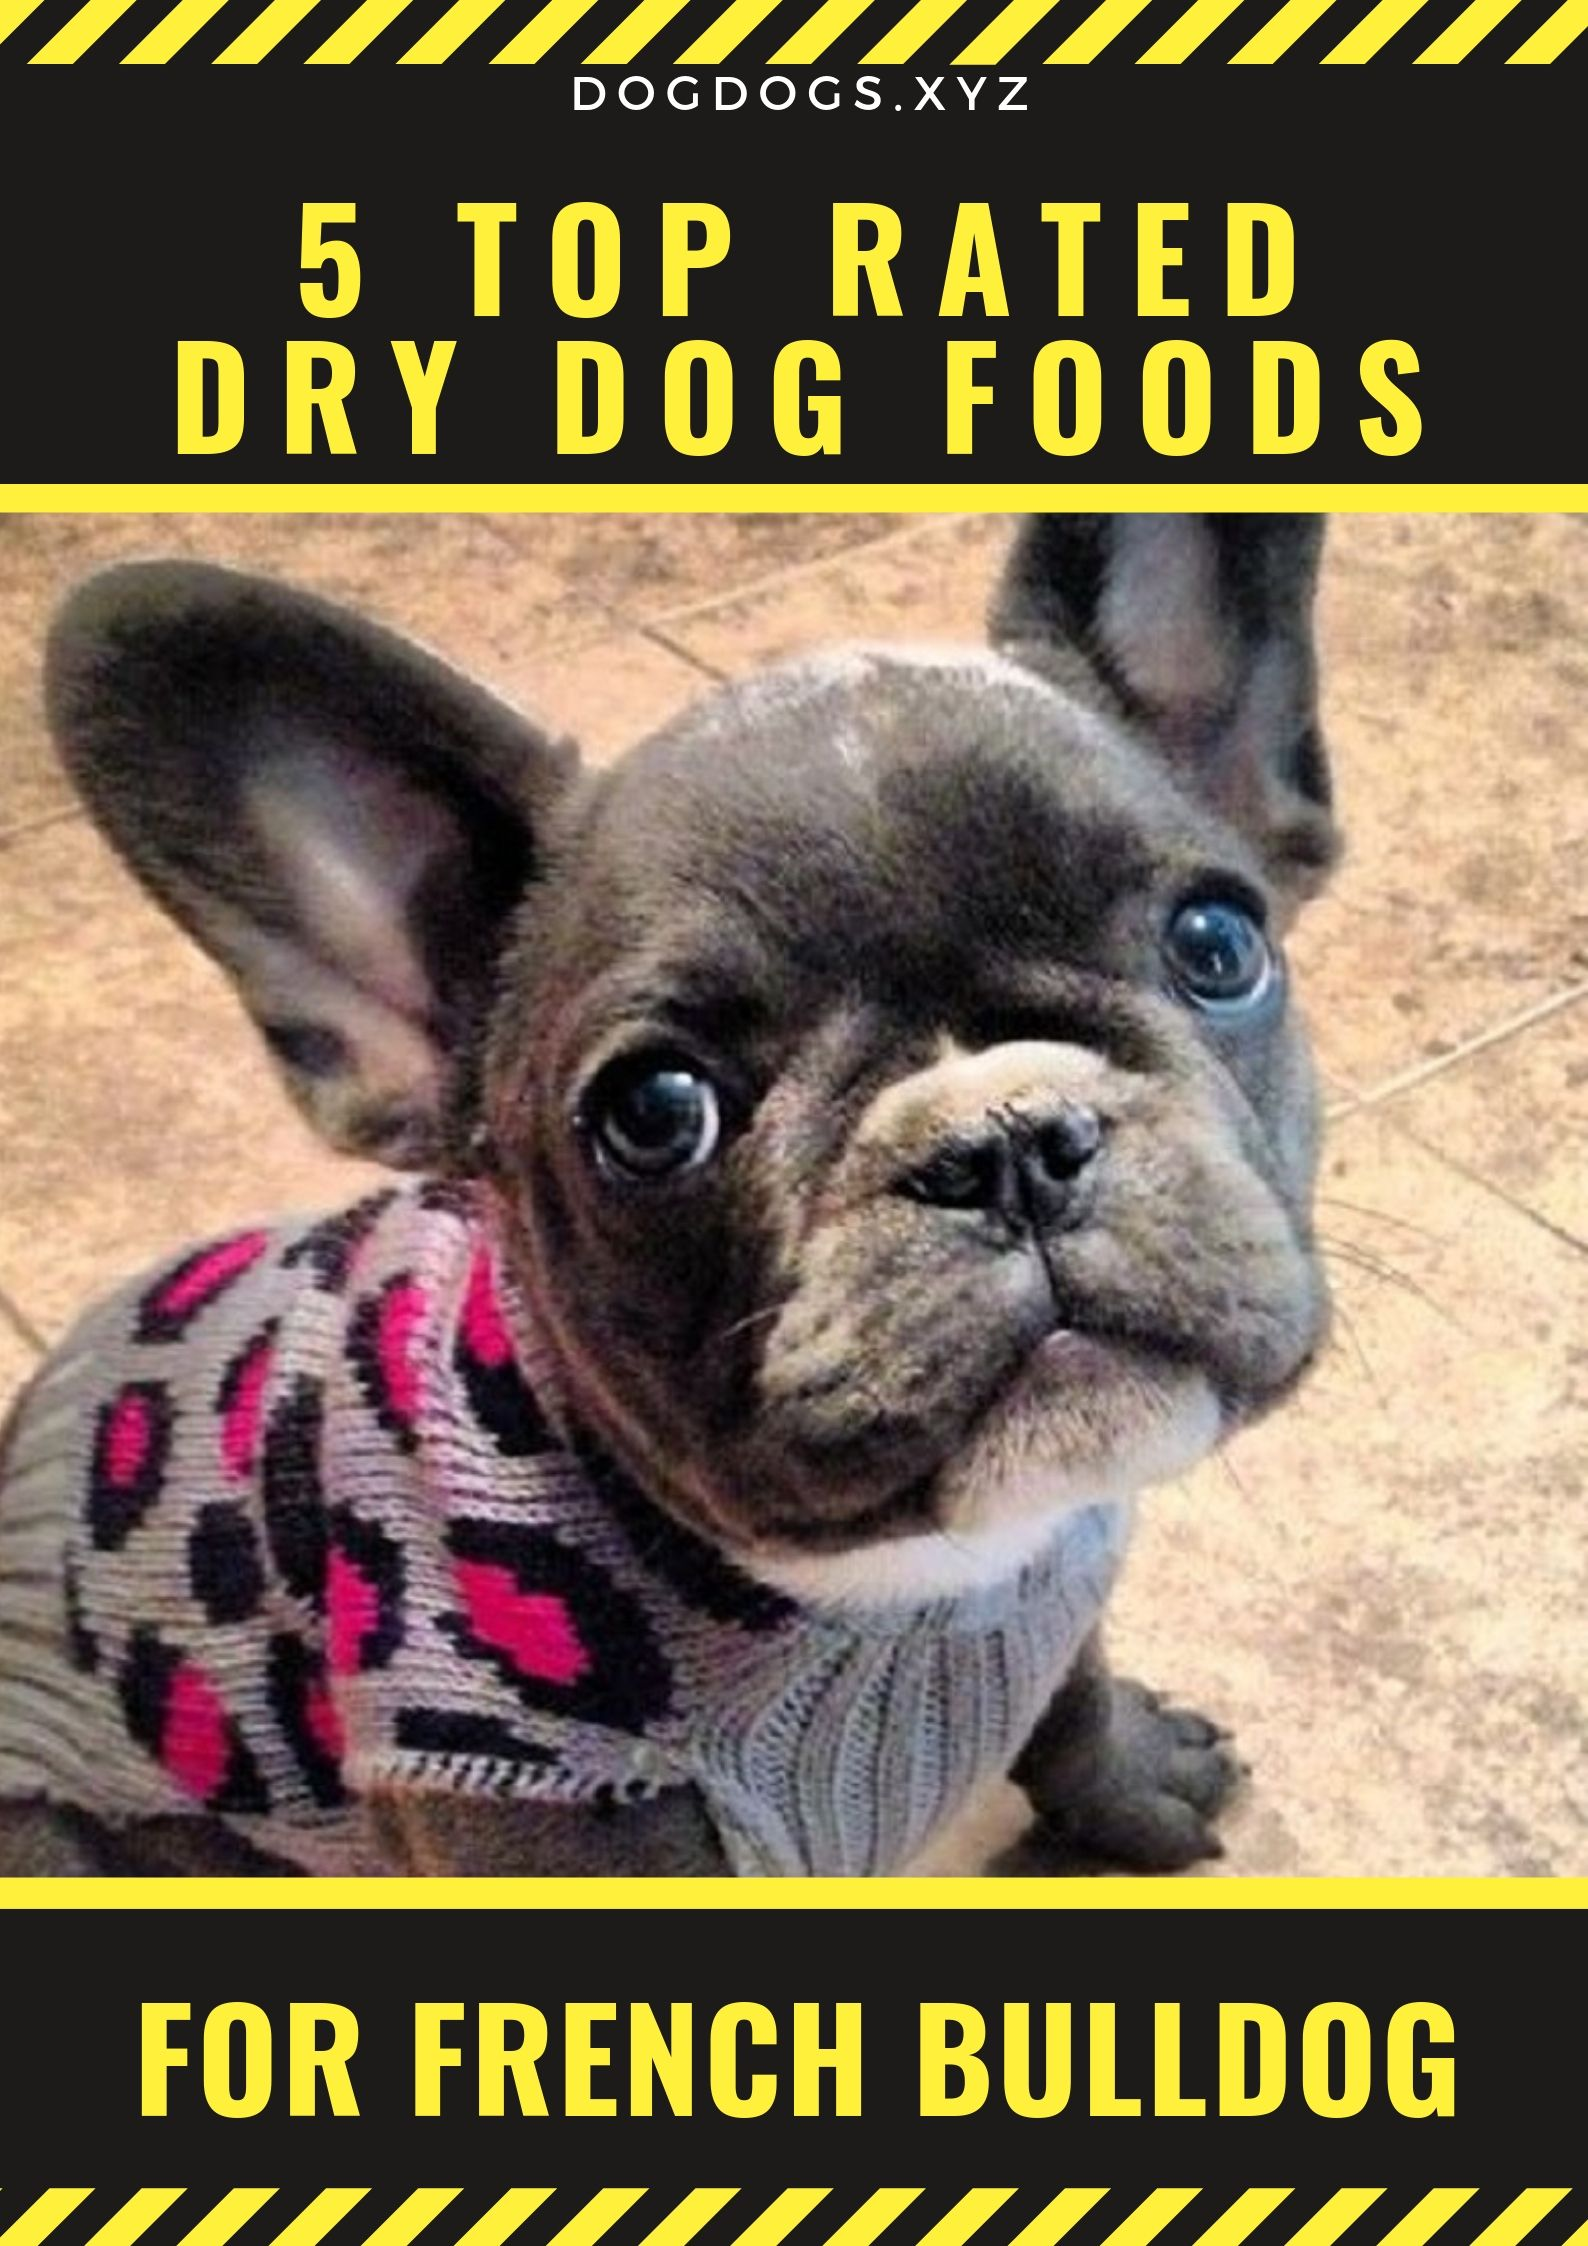 5 Top Rated Dry Dog Foods Money Dog Food Recipes Dry Dog Food